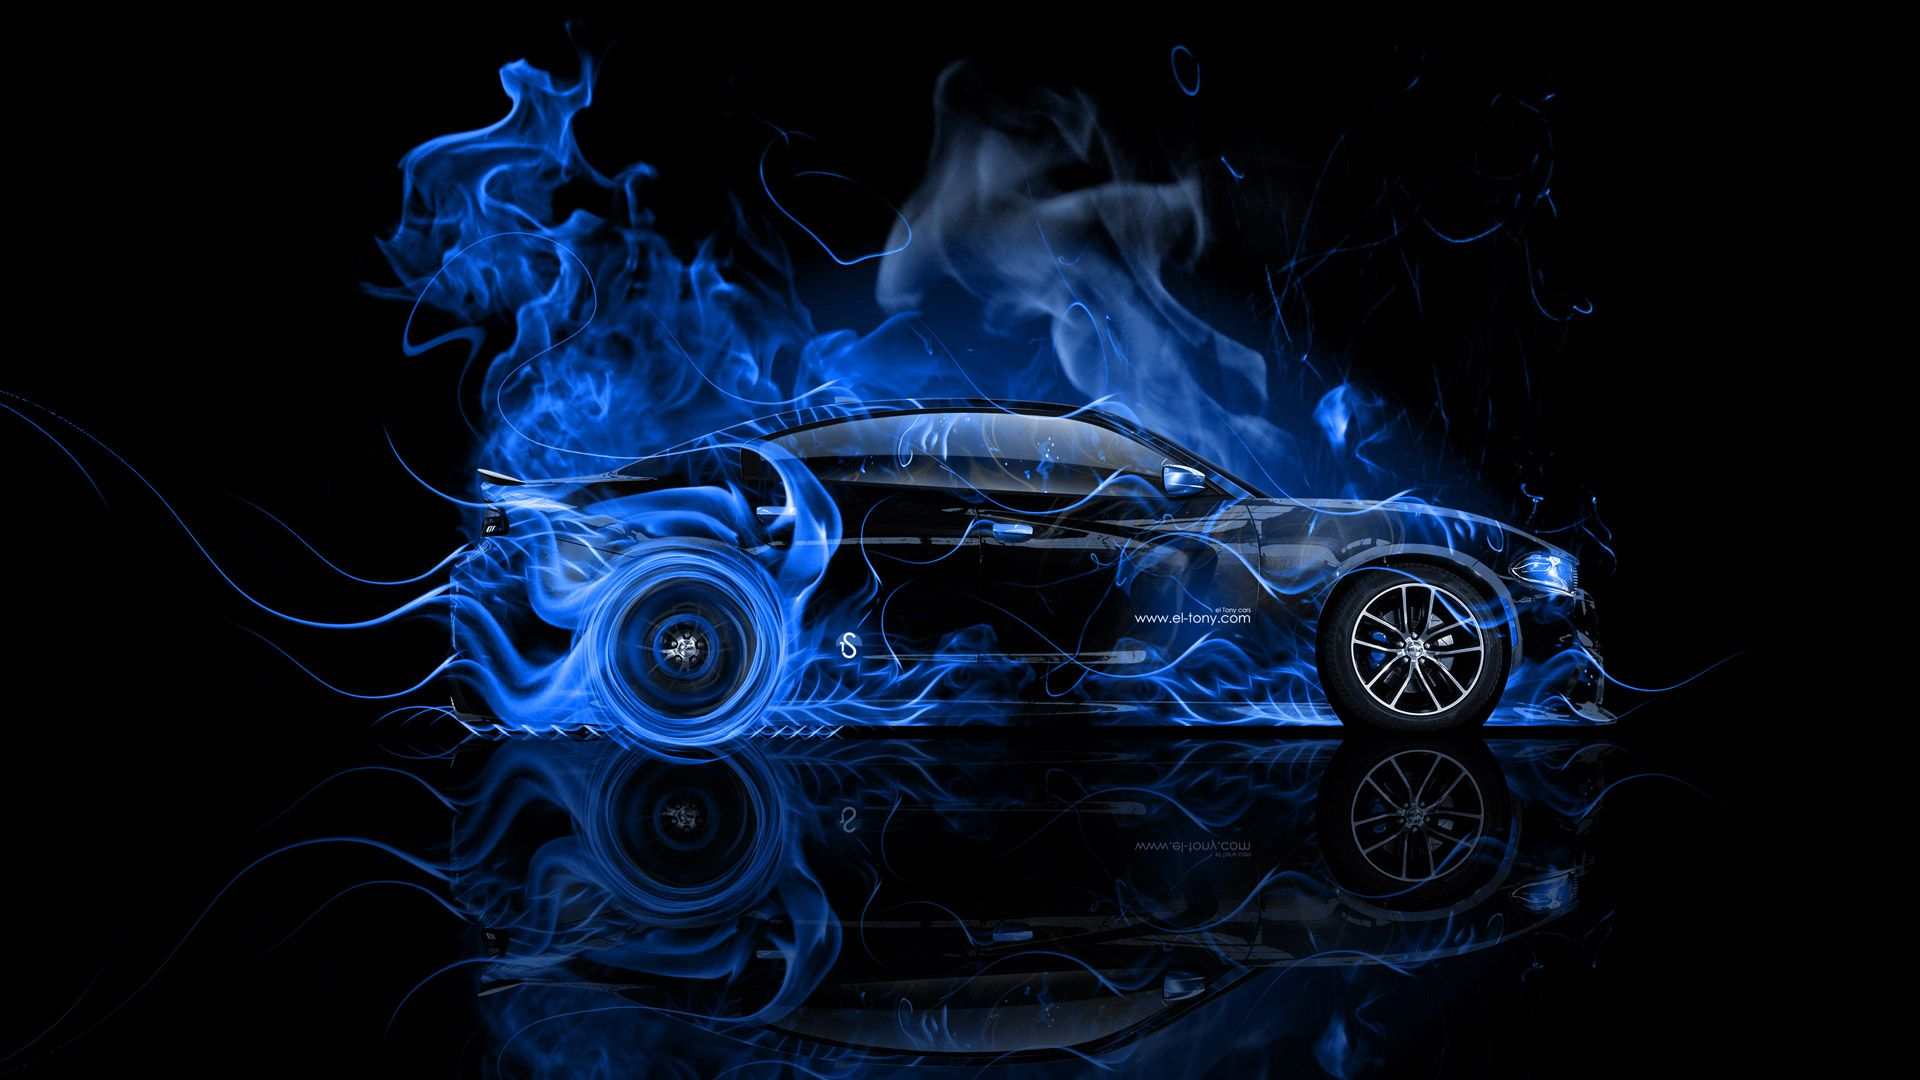 Dodge Charger Rt Muscle Side Blue Fire Abstract Car 2014 Art Hd Wallpapers Design By Tony Kokhan Www El Tony Com Jpg 1920 1080 Kartinki